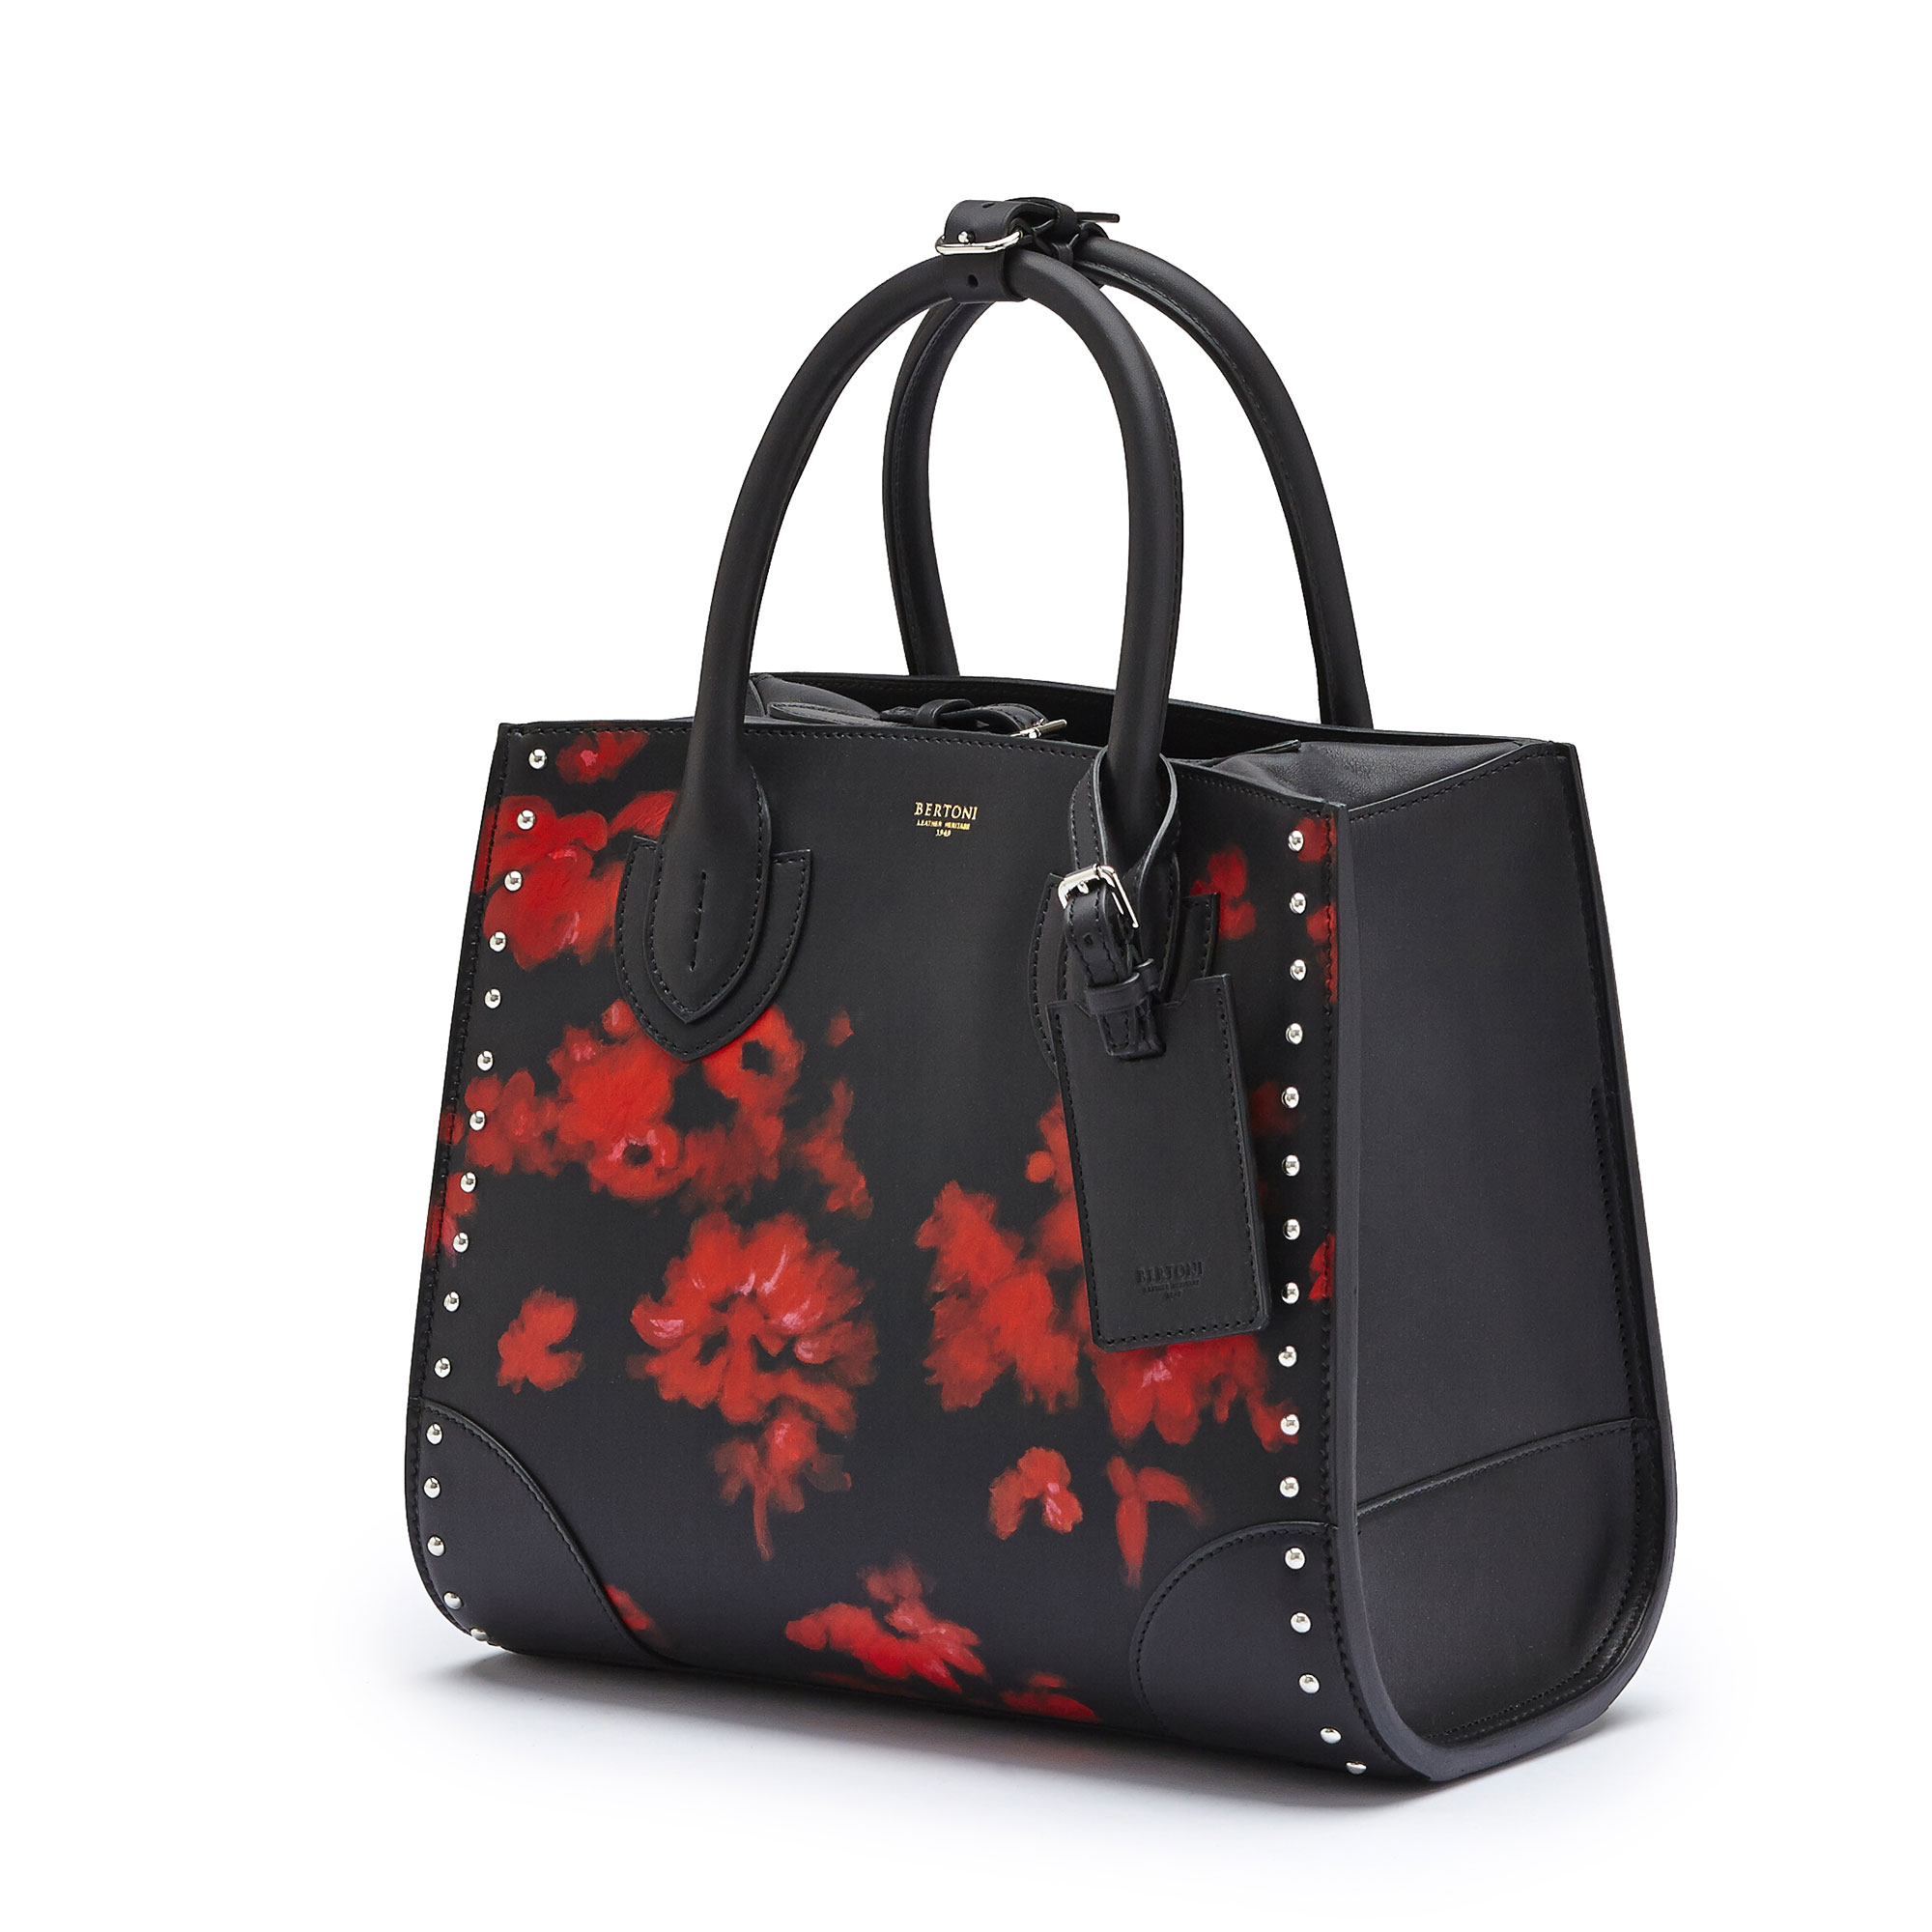 The black with hand painted red flowers french calf Darcy medium bag by Bertoni 1949 03